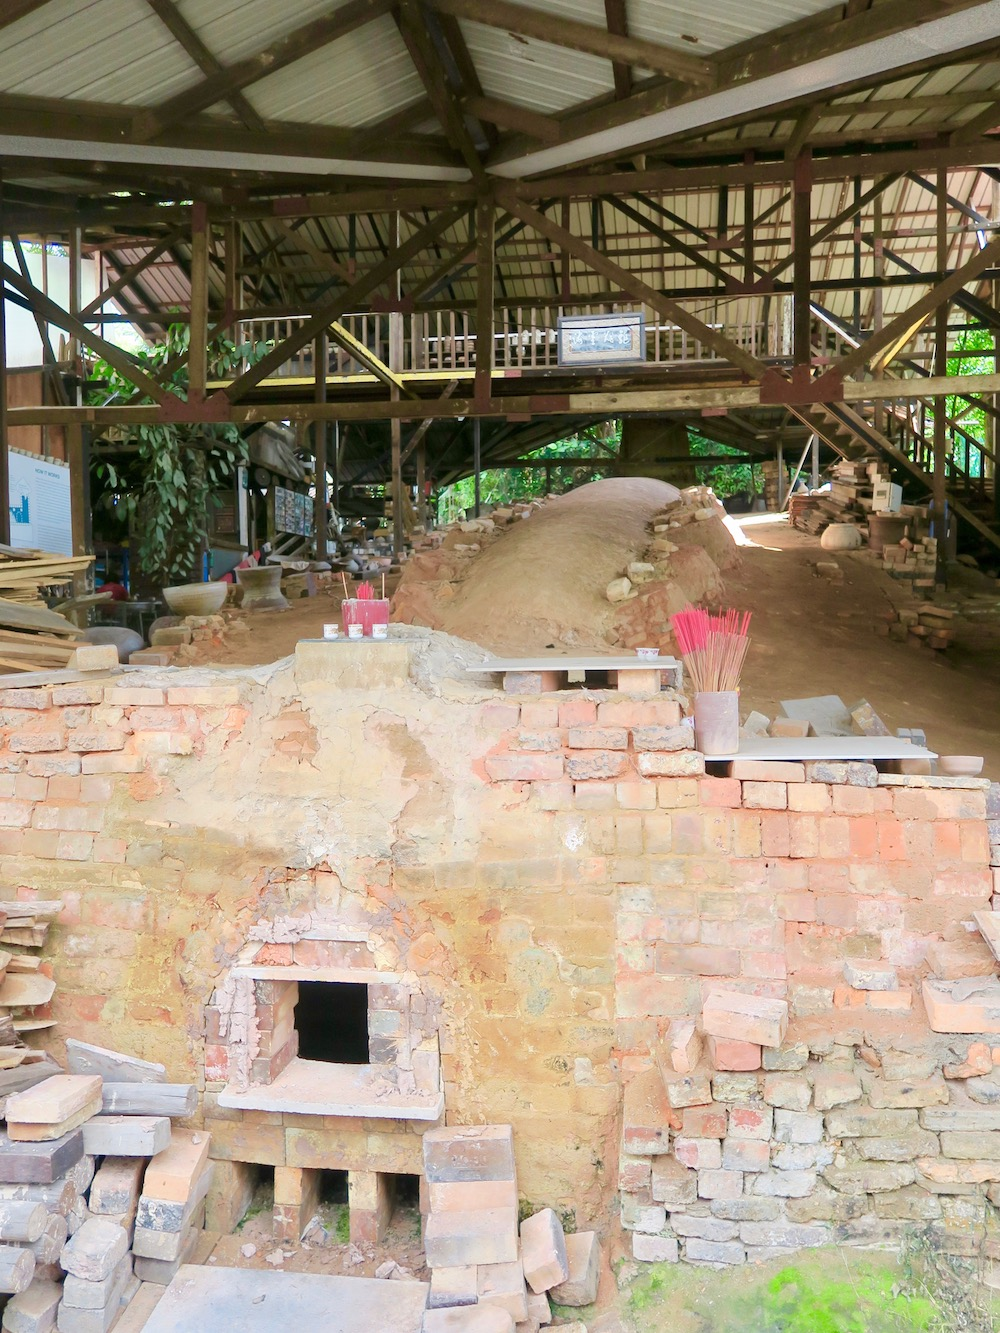 Dragon Kiln in Singapore |curlytraveller.com